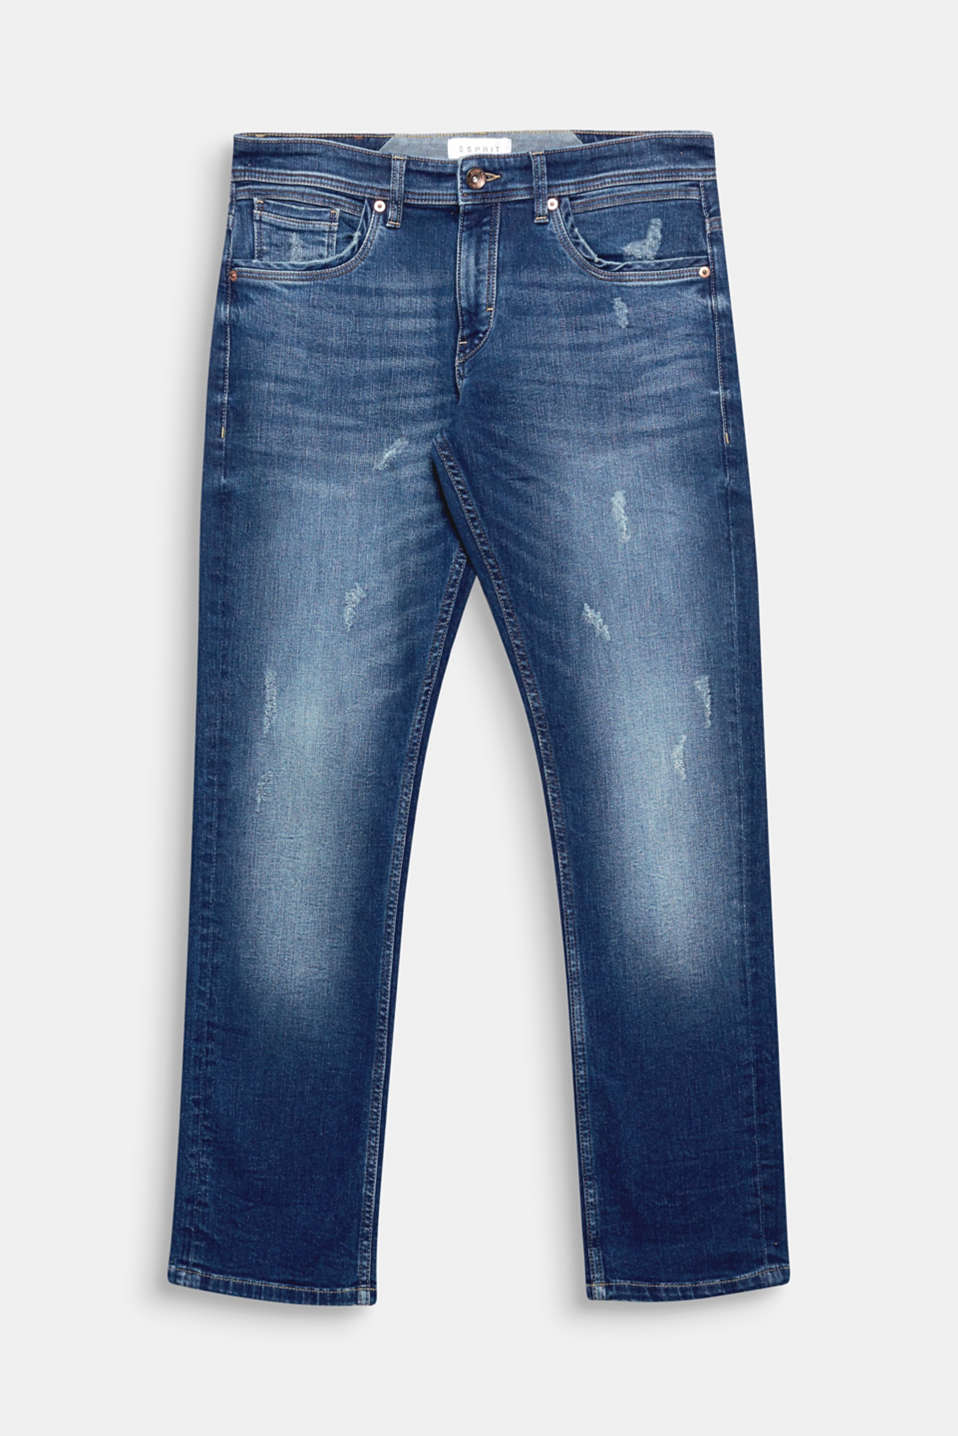 We love denim! The stunning vintage effects, and the light stone wash gives these five-pocket jeans a high-quality look.